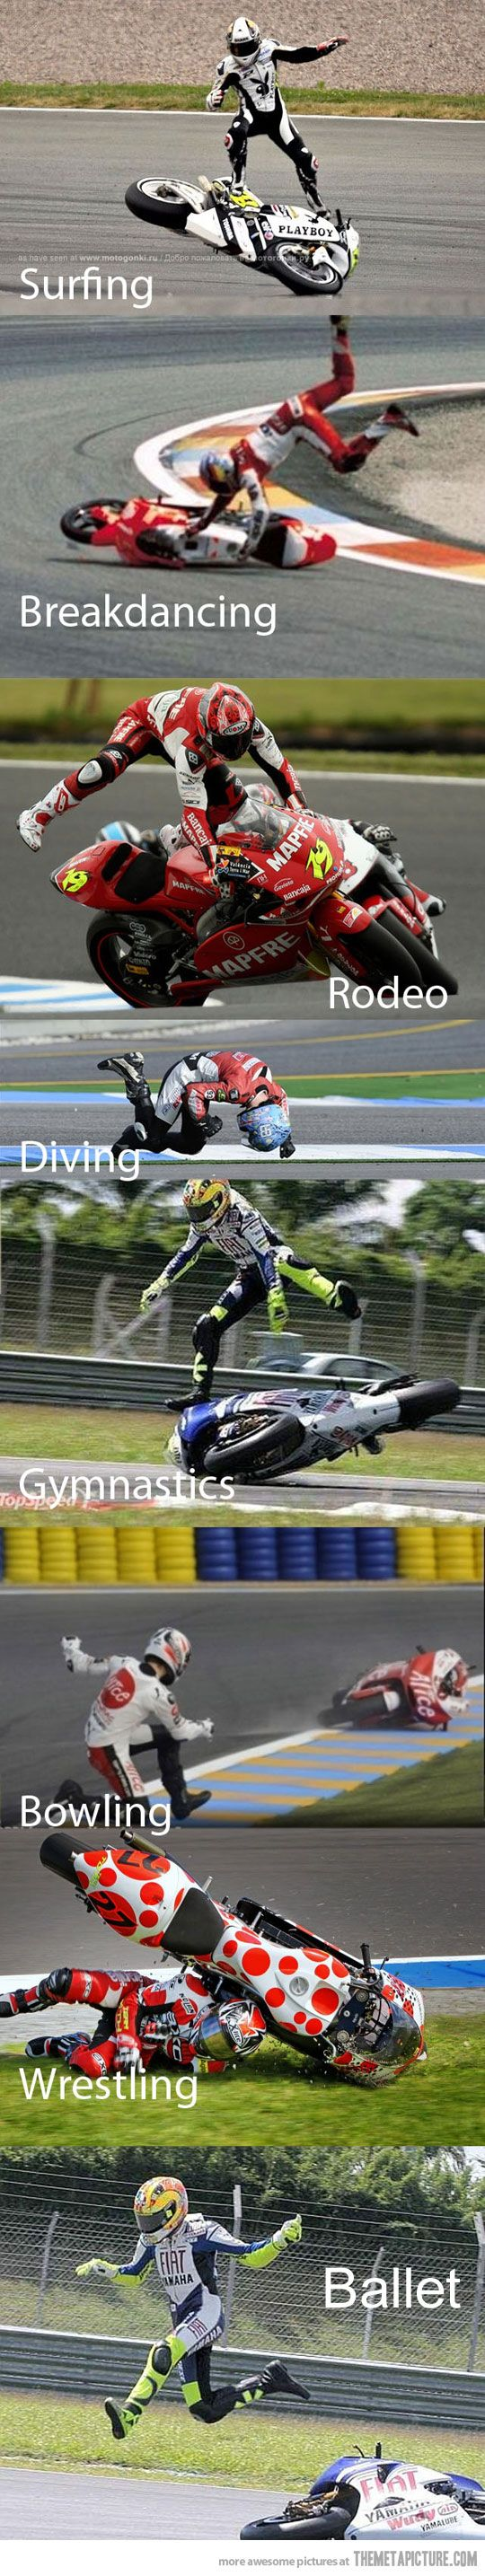 Sports that can be combined with motorcycle racing so corny. But had to pin anyway